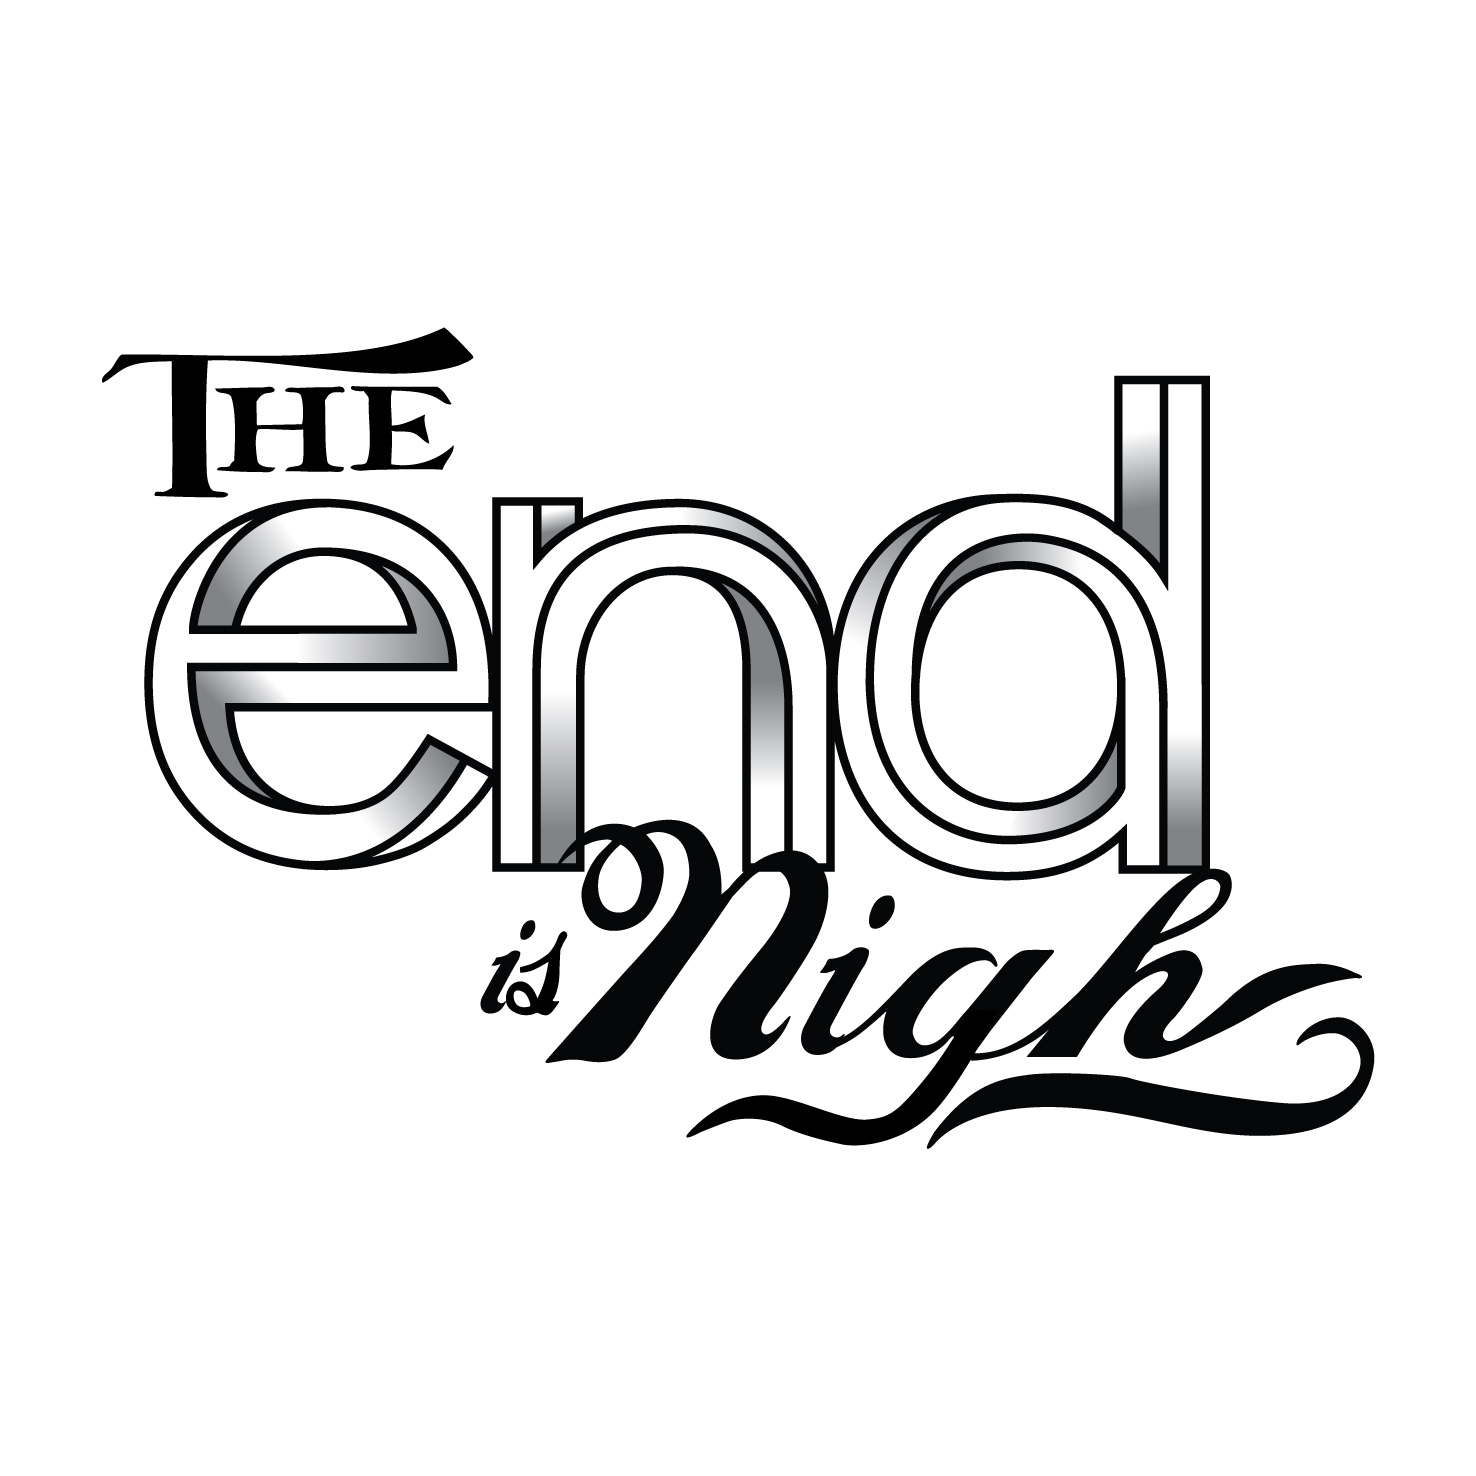 The End Nigh